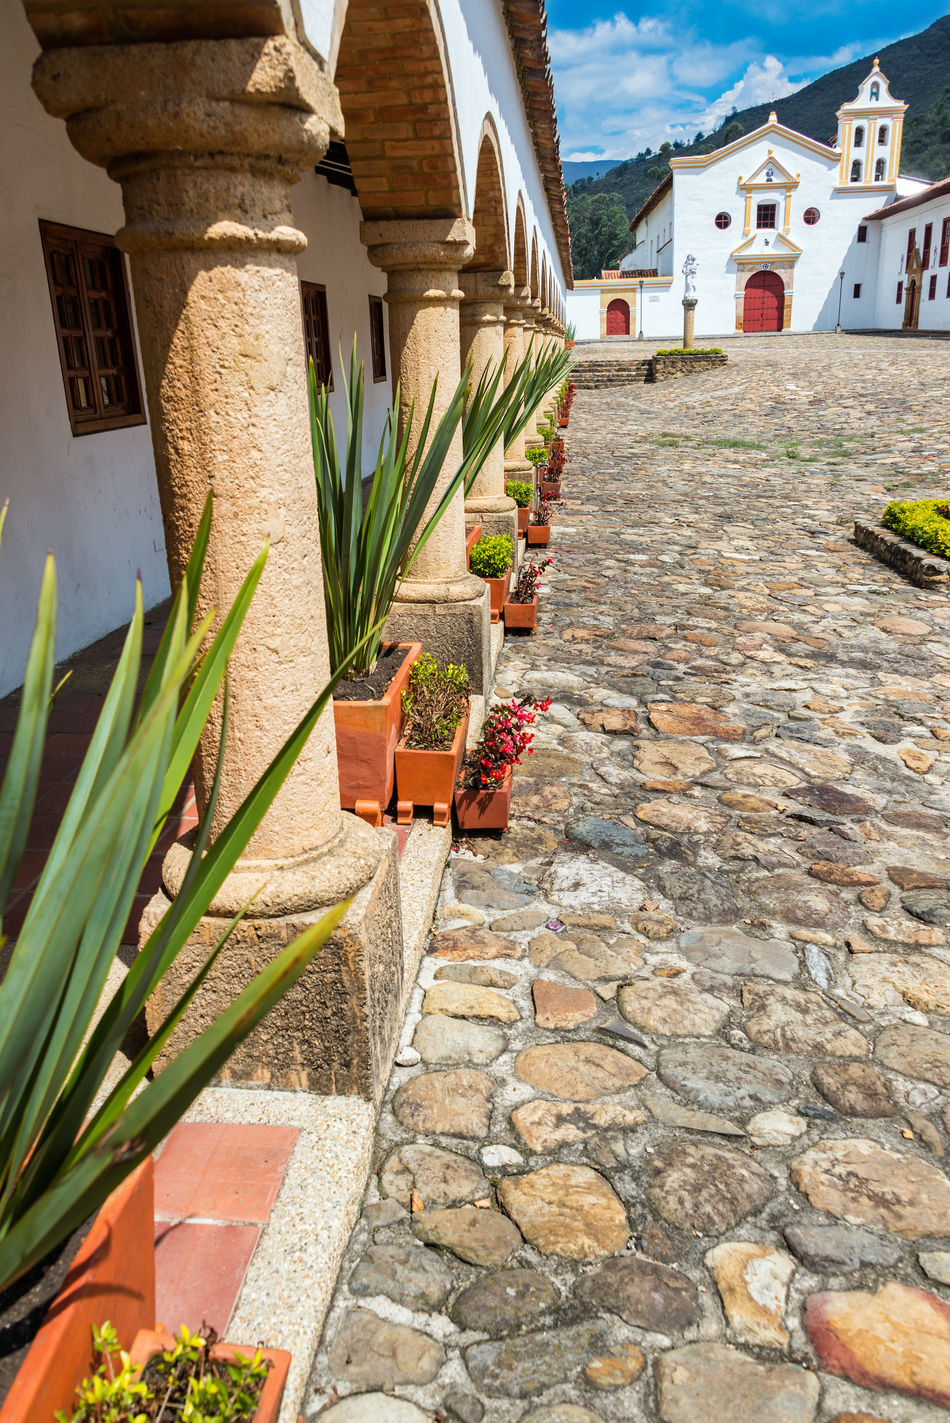 La Candelaria Monastery and courtyard near Villa de Leyva, Colombia America Architecture Boyaca Building Colombia Colonial Country Countryside Exterior Historic House Latin Outdoors Residence South Stone Style Town Travel Typical VillaDeLeyva Wall White Window Wood